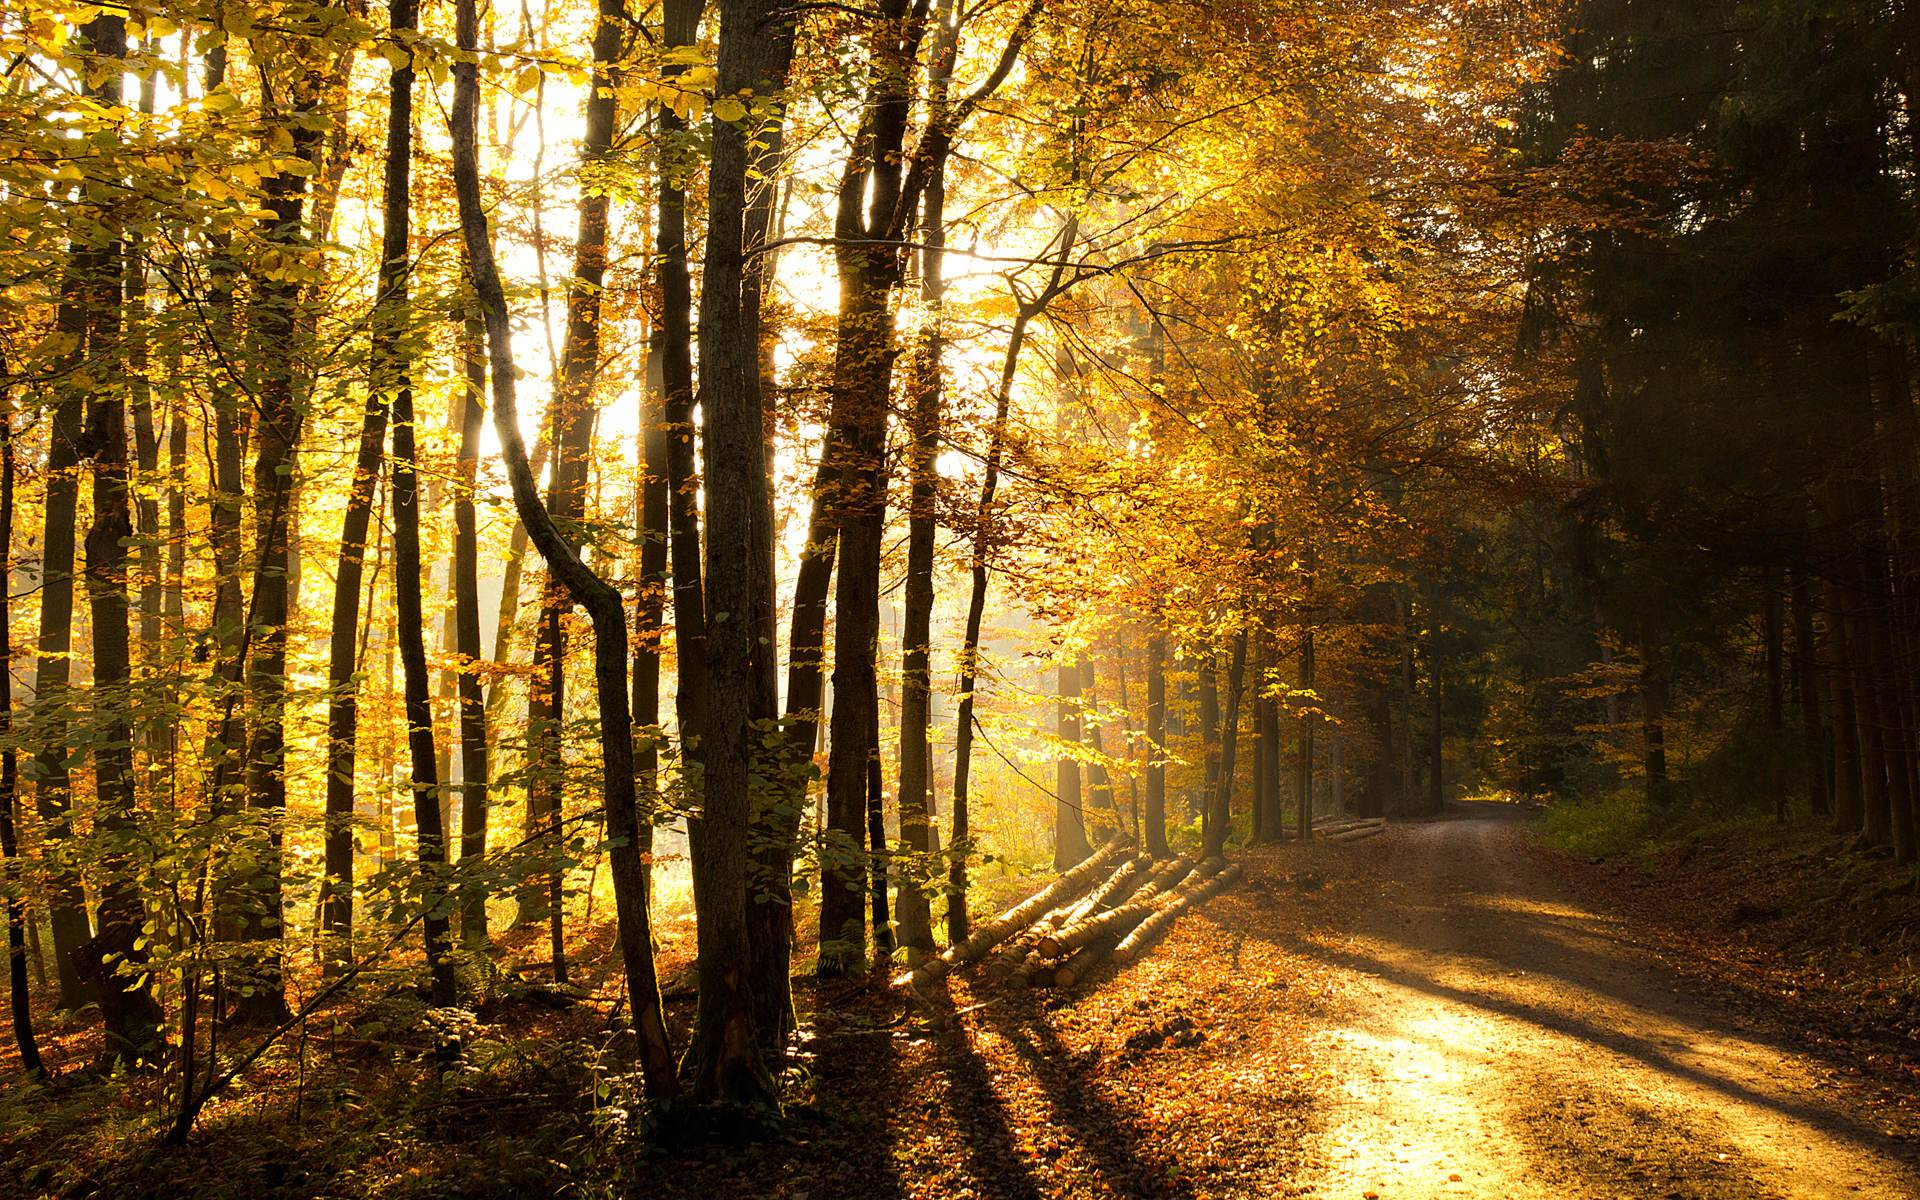 Forest Hd Theme Free Download Wallpaper - Beautiful Forest Road , HD Wallpaper & Backgrounds